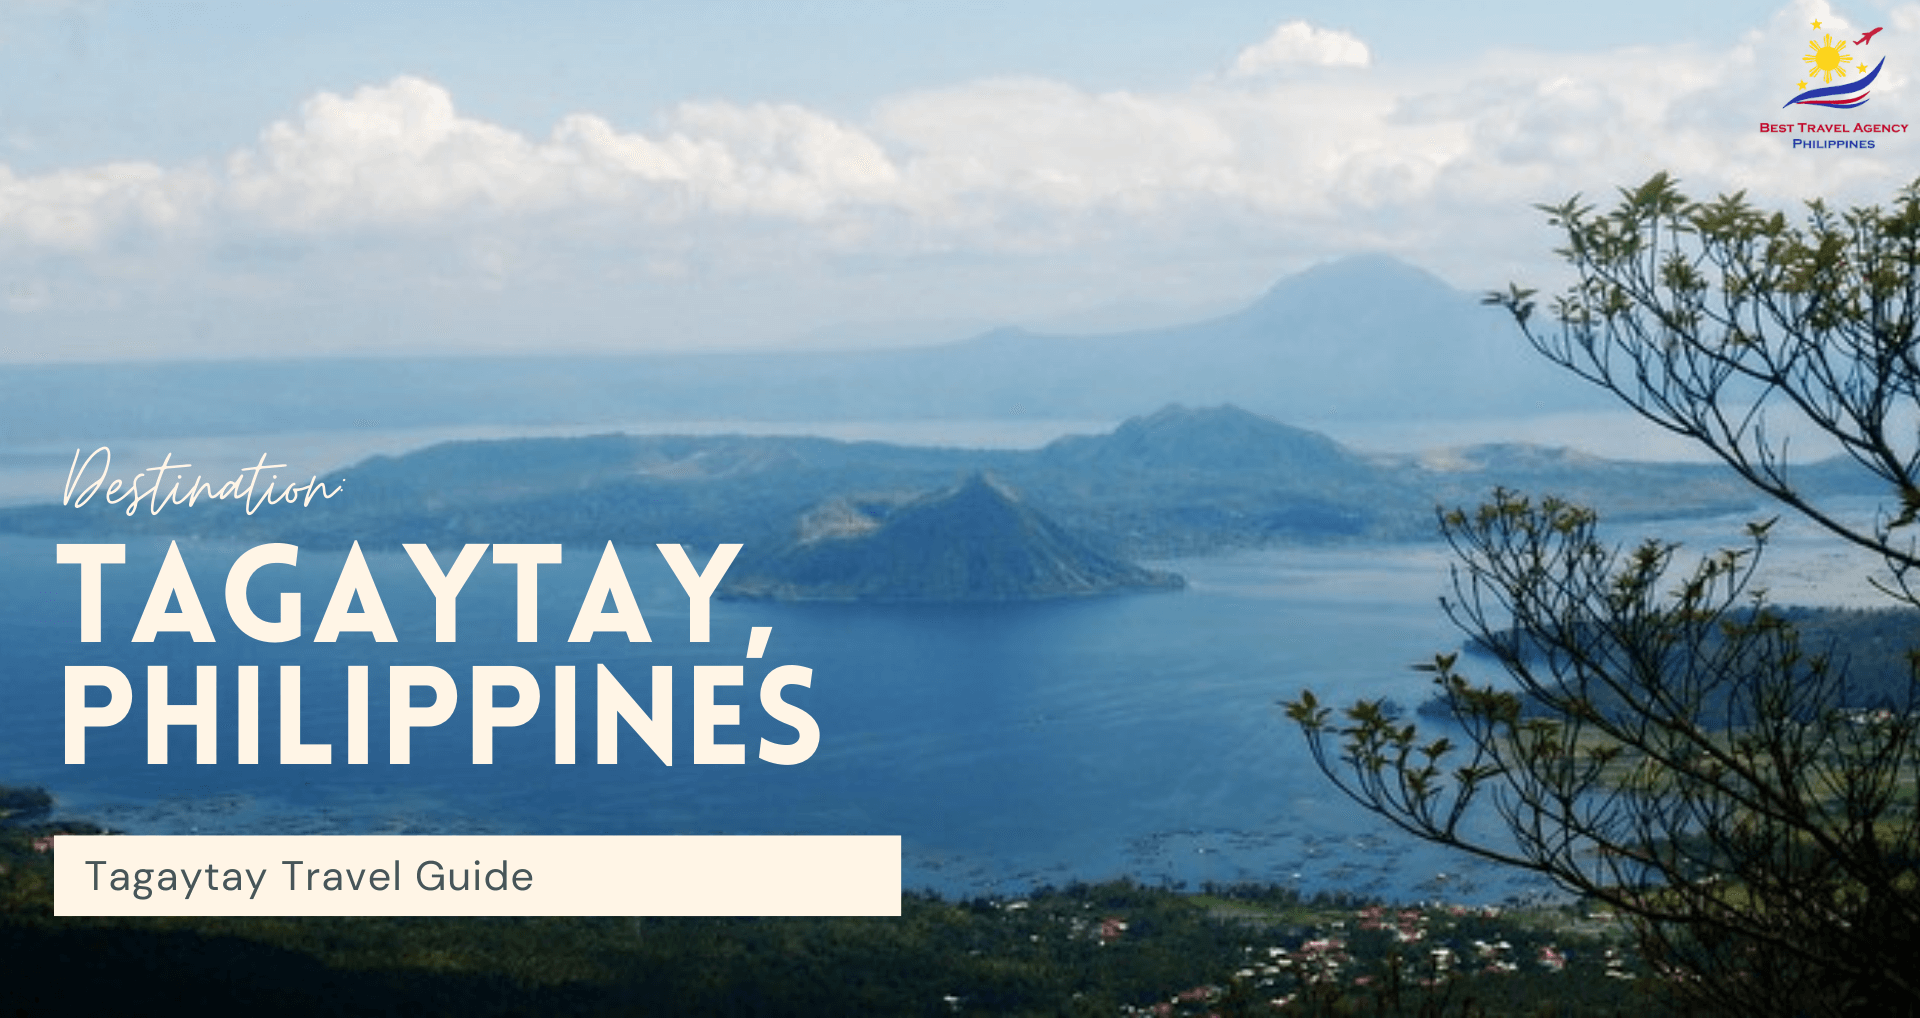 Tagaytay travel guide